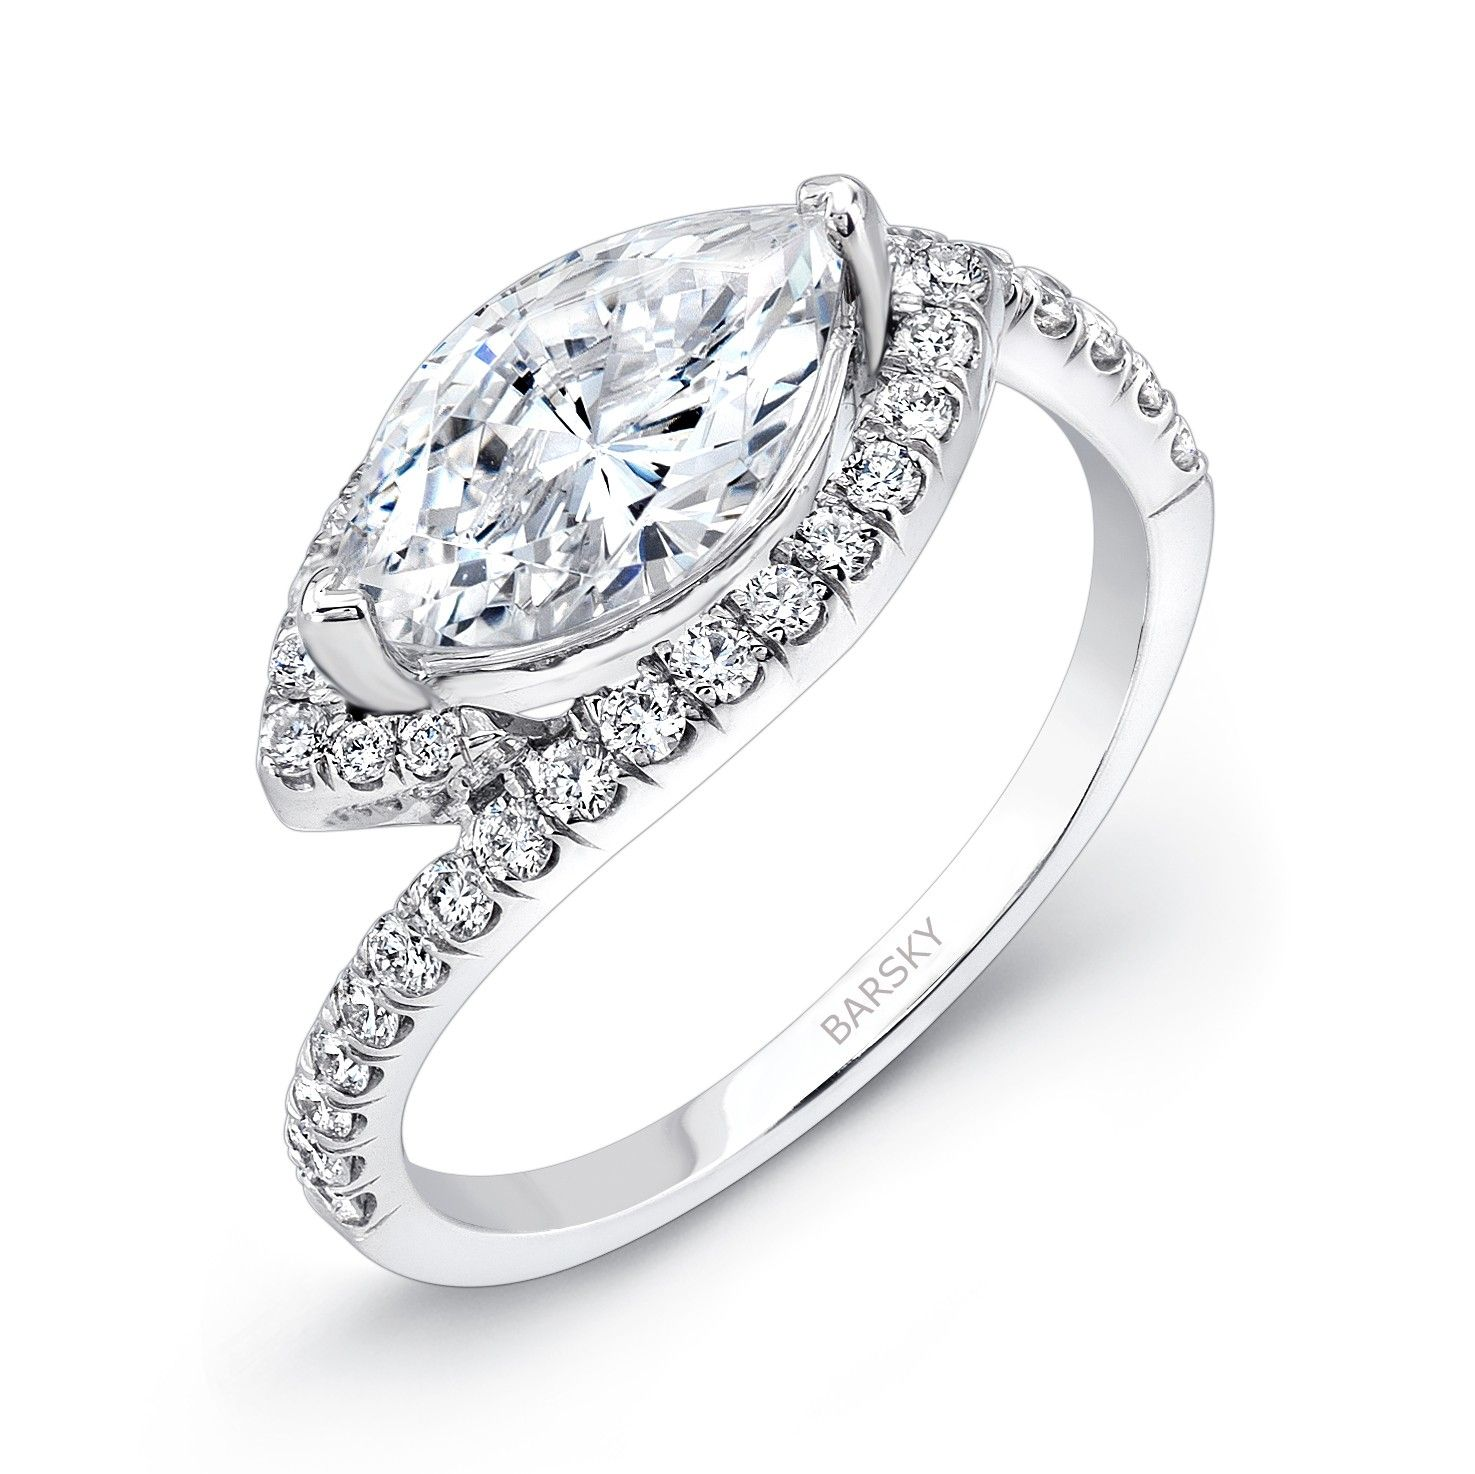 wedding rings ring jewellery diamond engagement settings round vintage of best